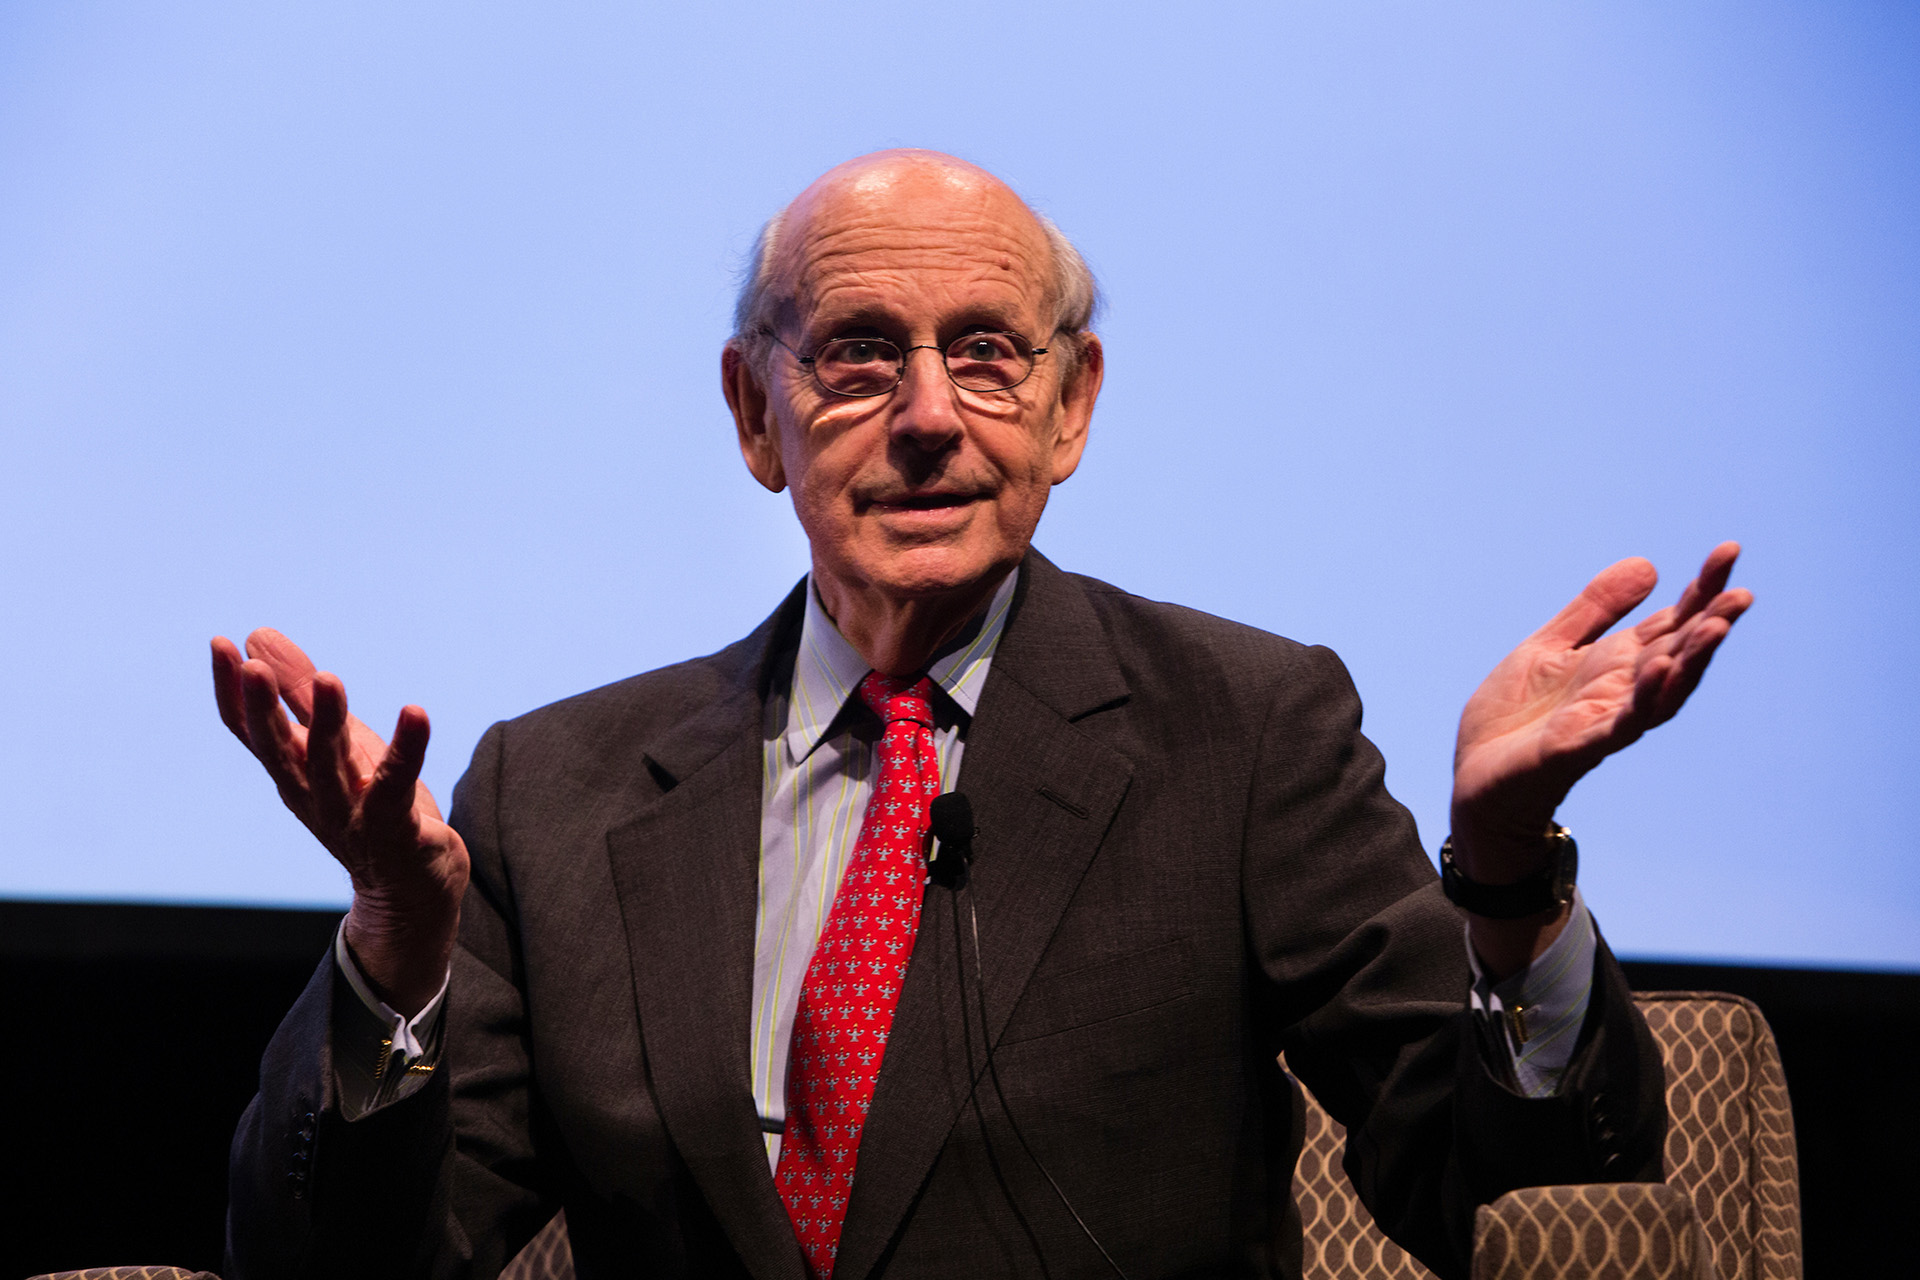 Justice Stephen Breyer was a Tisch College Distinguished Speaker